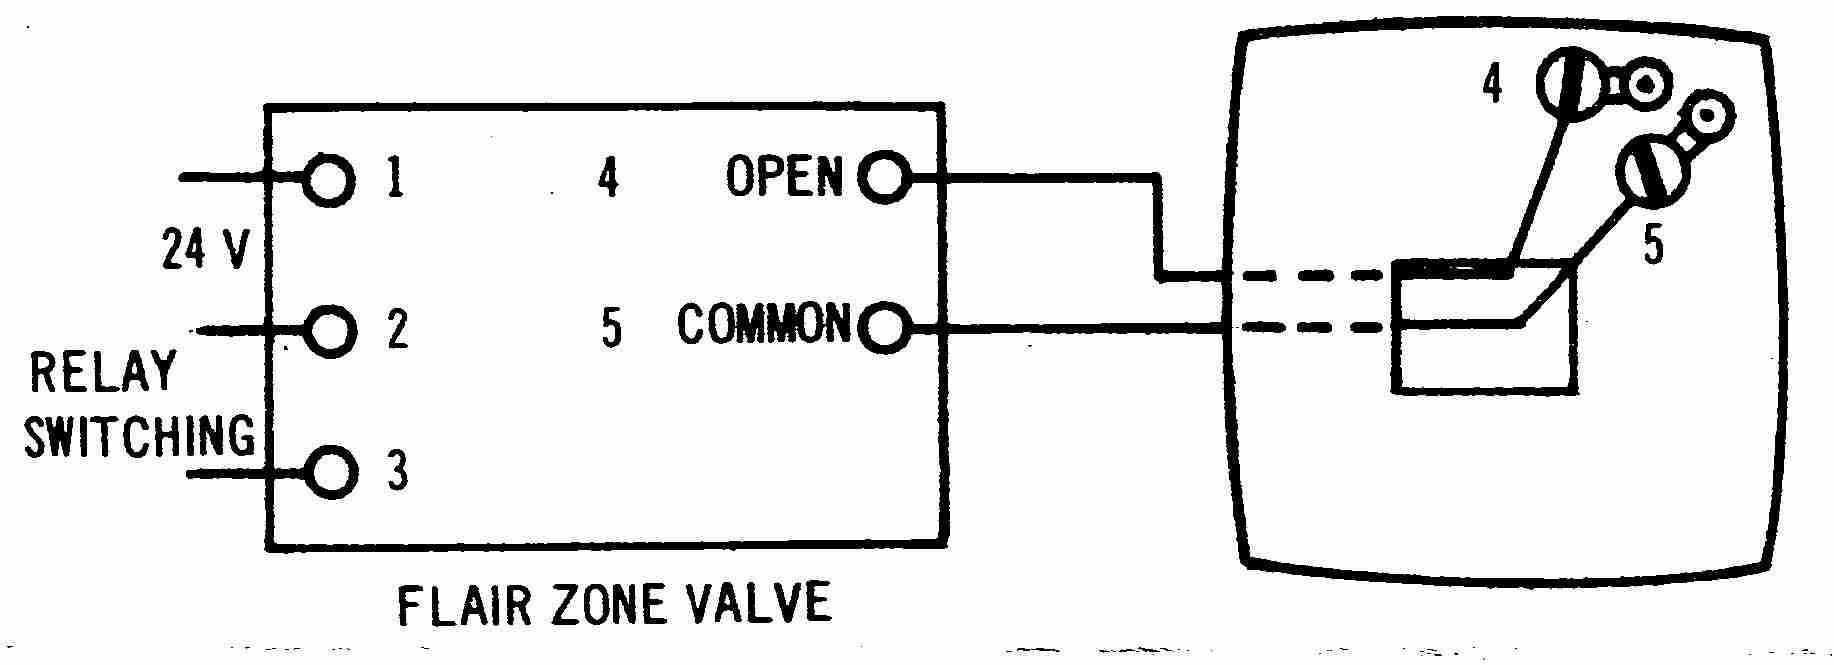 Flair2w_001_DJFc1 room thermostat wiring diagrams for hvac systems fcu wiring diagram at fashall.co